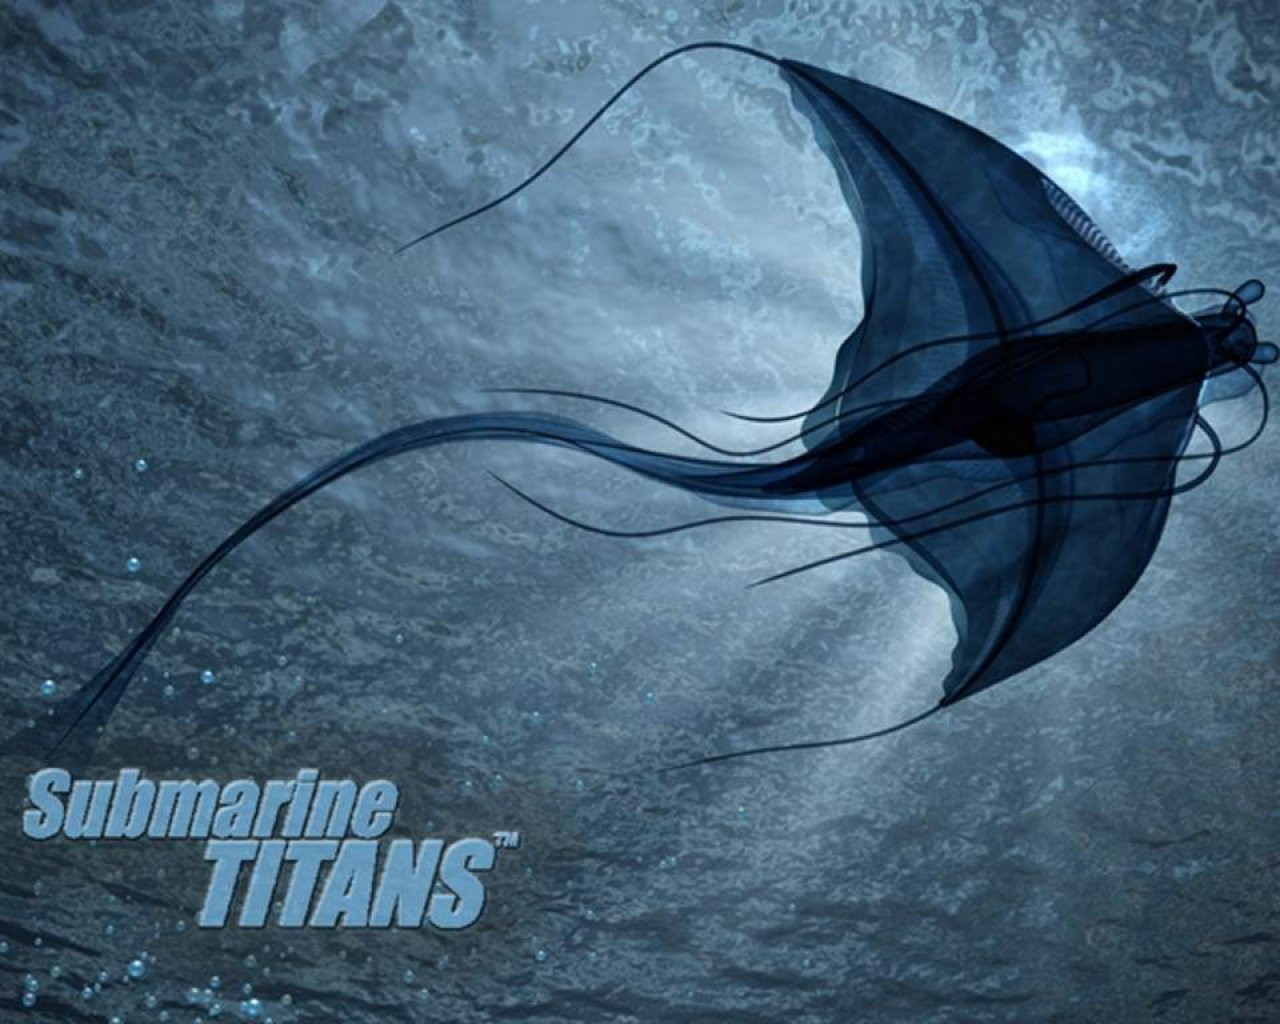 Submarine Titans for Microsoft Windows